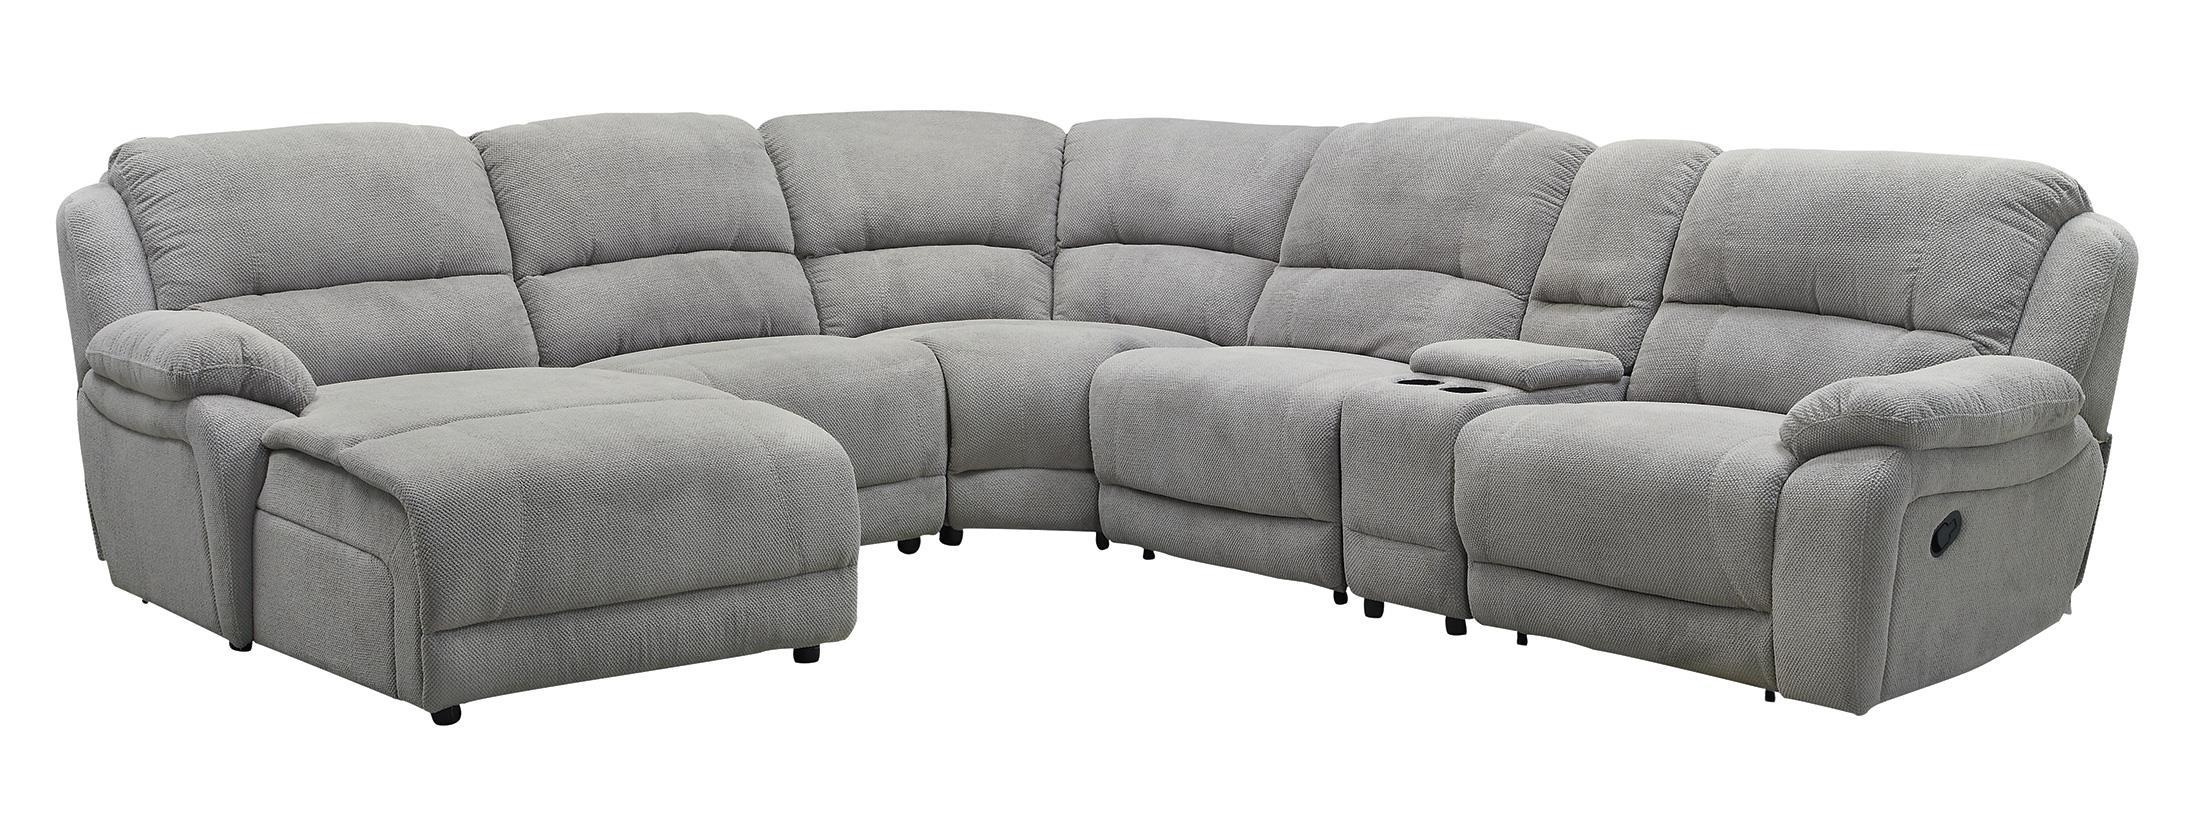 Coaster Mackenzie Silver 6 Piece Reclining Sectional Sofa With For 6 Piece Sectional Sofas Couches (View 15 of 20)